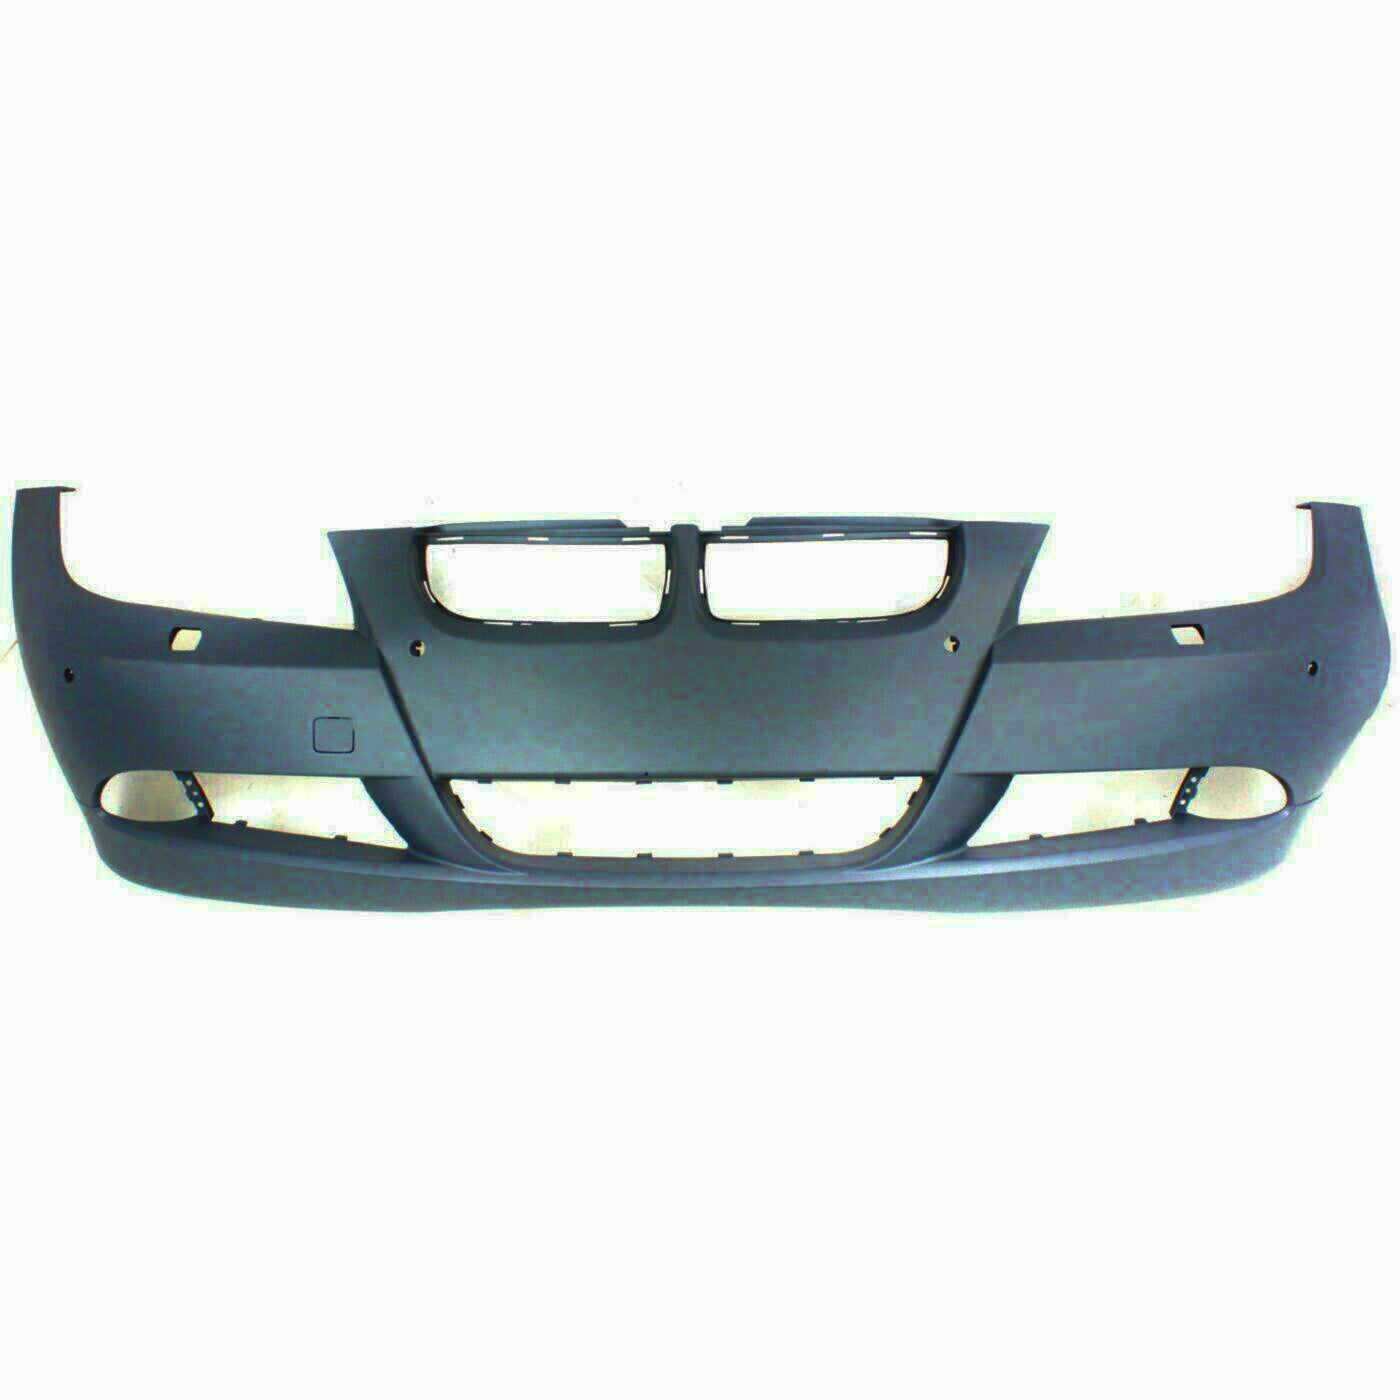 2006-2008 BMW 3-Series Sedan/Wagon (W/ Parking Distance Control and W/ HL Washer Cutouts) Front Bumper